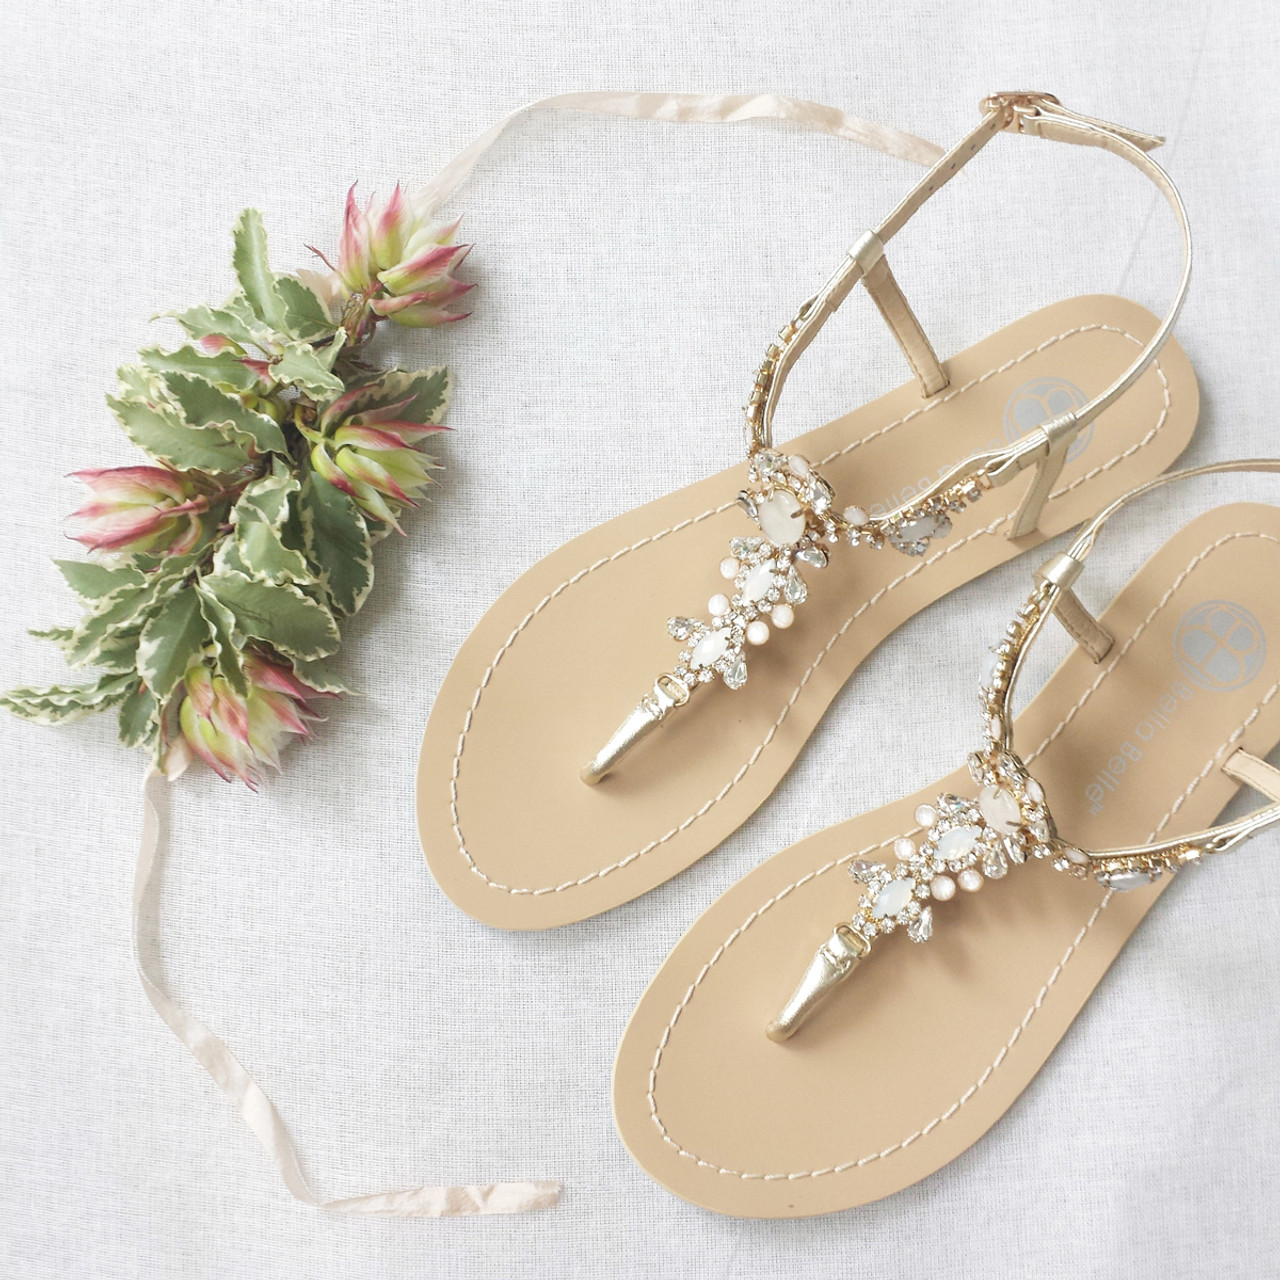 f6fa1dffd2c20 Thong sandal Vintage-inspired rows of crystal jewels and white onyx-like  stones Jewels